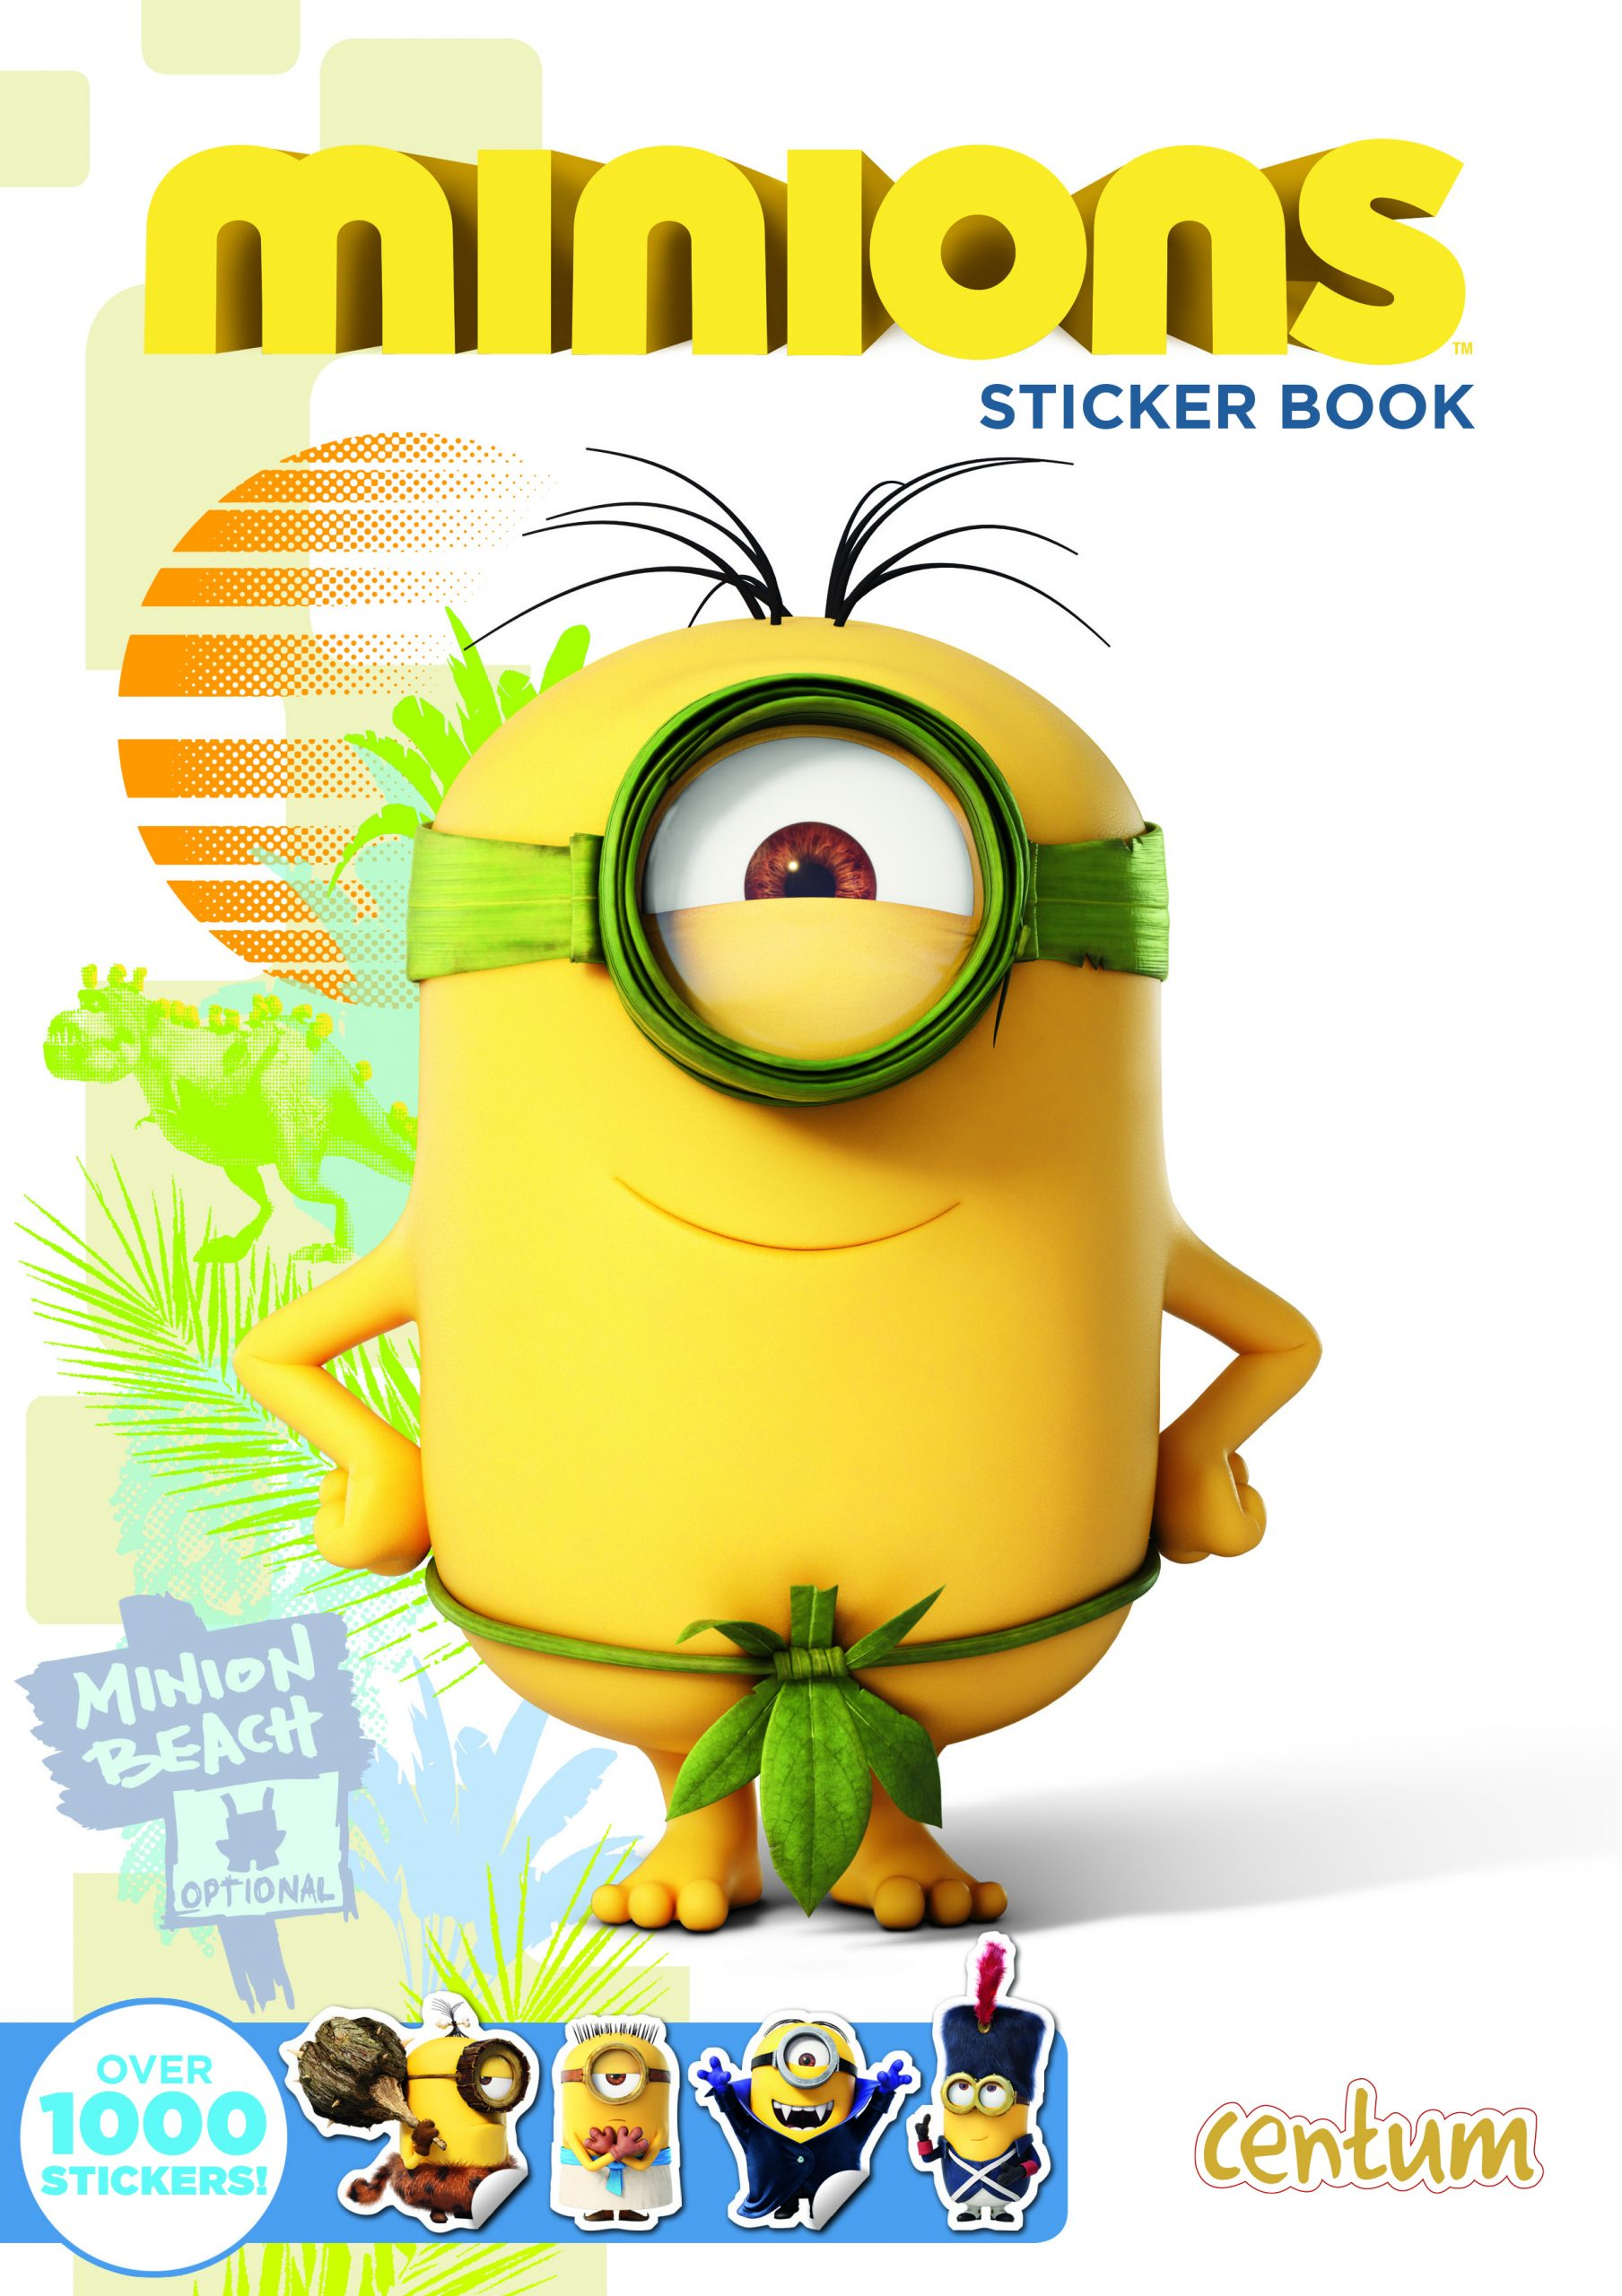 Minions Sticker Book SUM15 Cover with 7.5mm Spine.indd